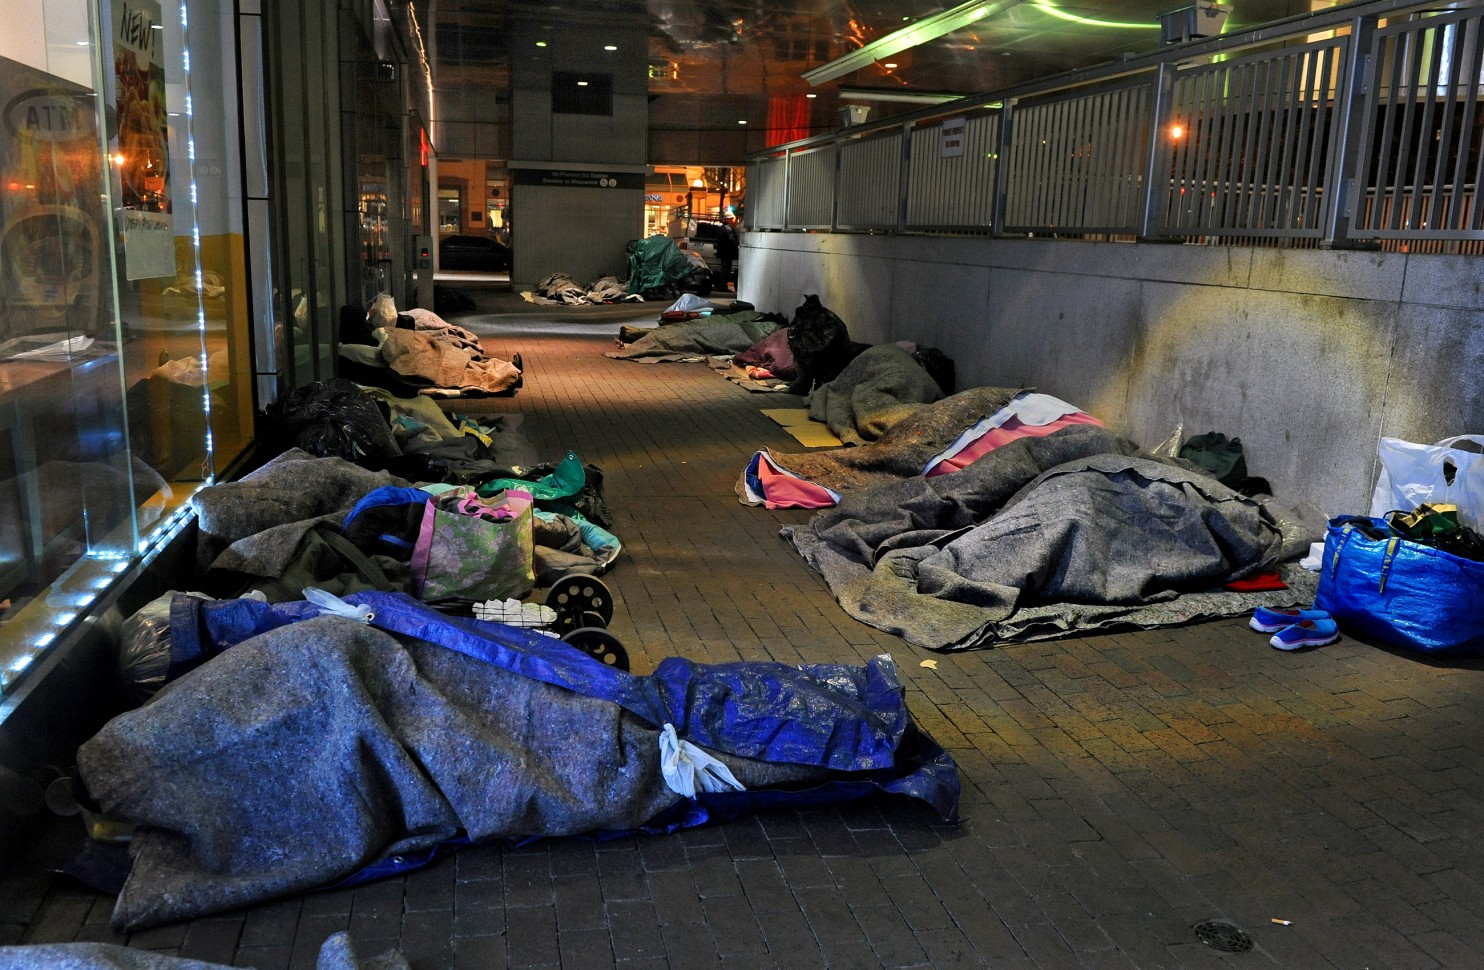 Government boasts 319,999 homeless people don't die every 19 hours